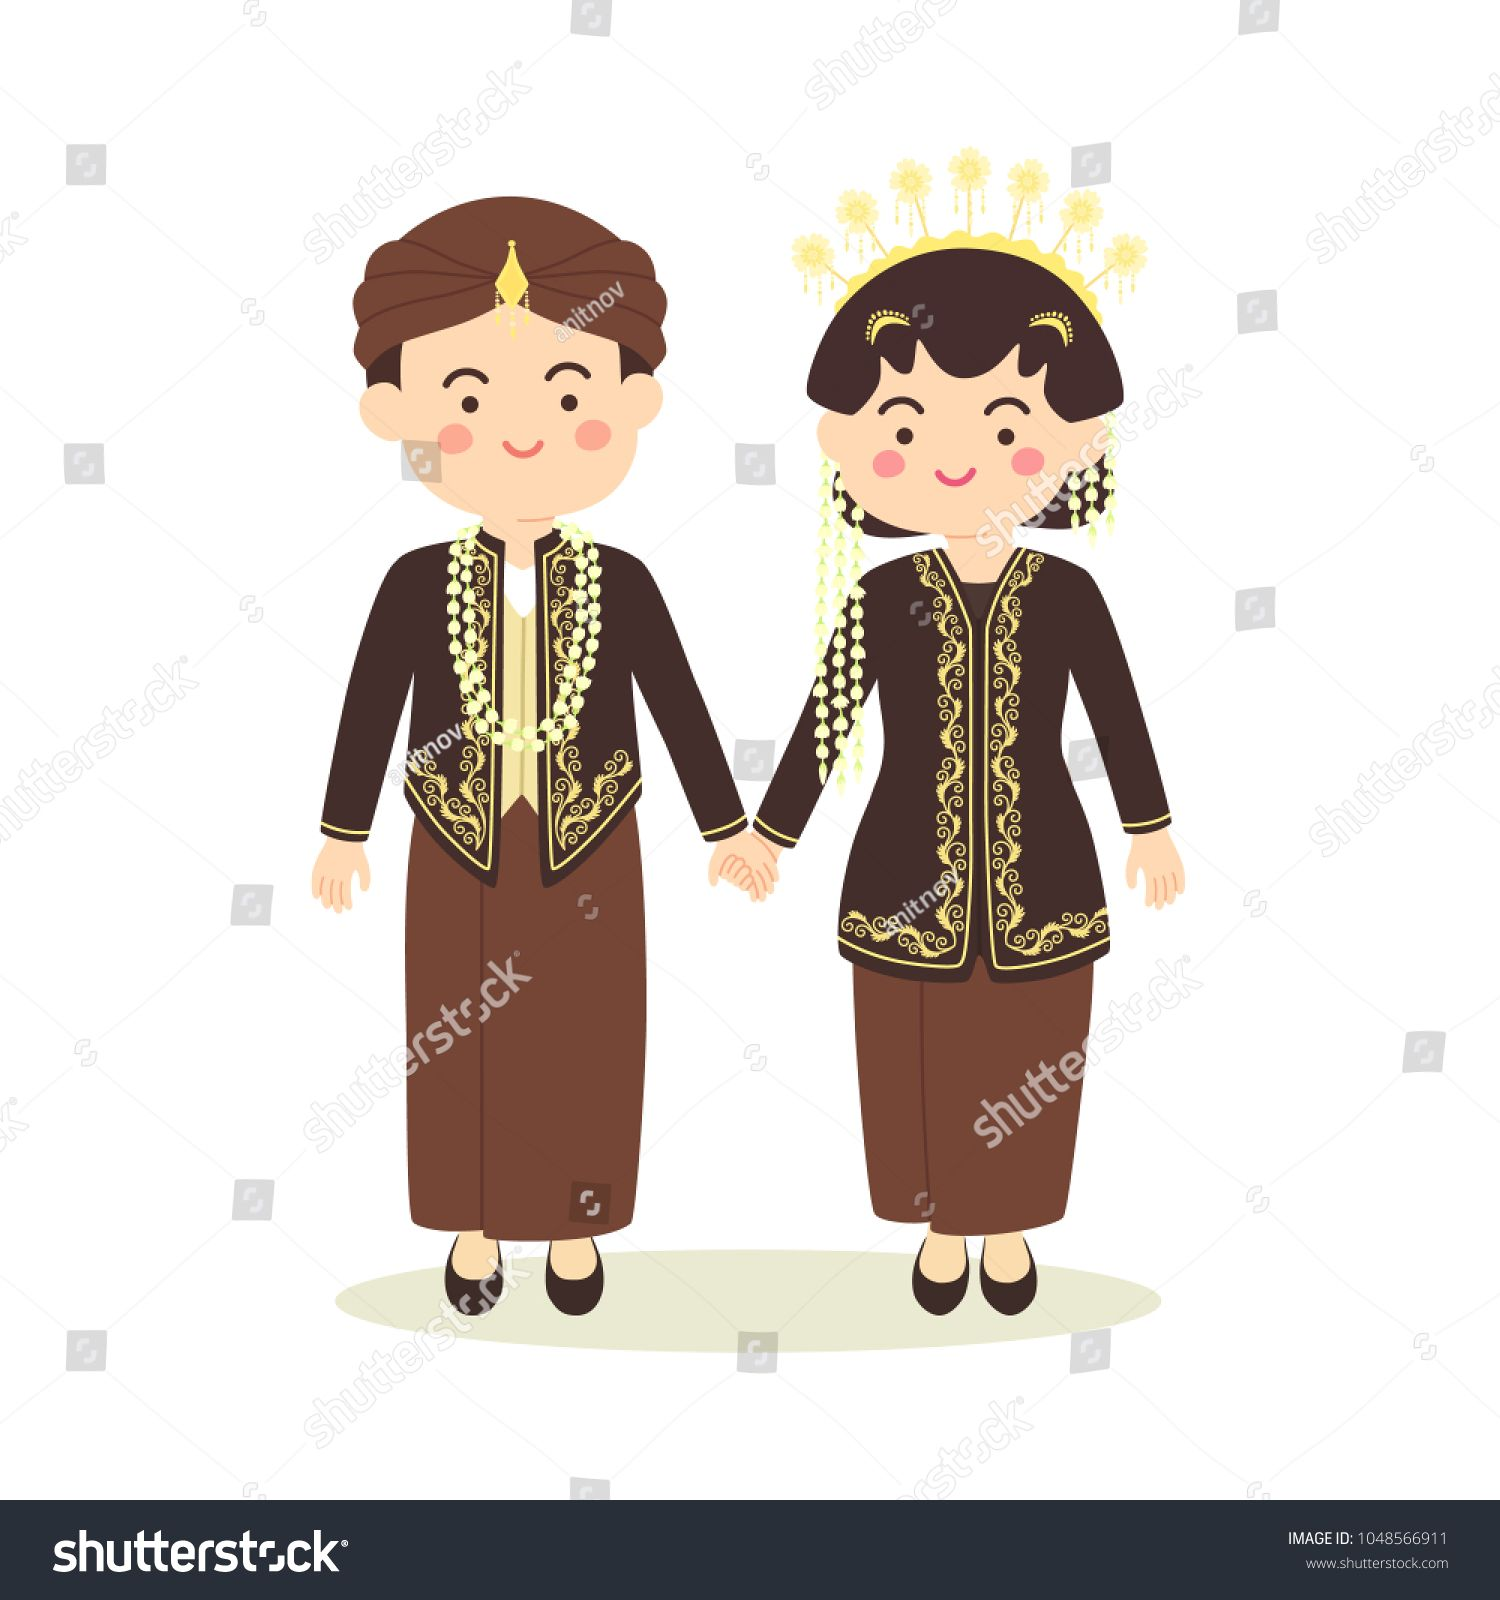 Central java indonesia wedding couple cute indonesian black javanese traditional clothes costume bride and groom cartoon vector illustration